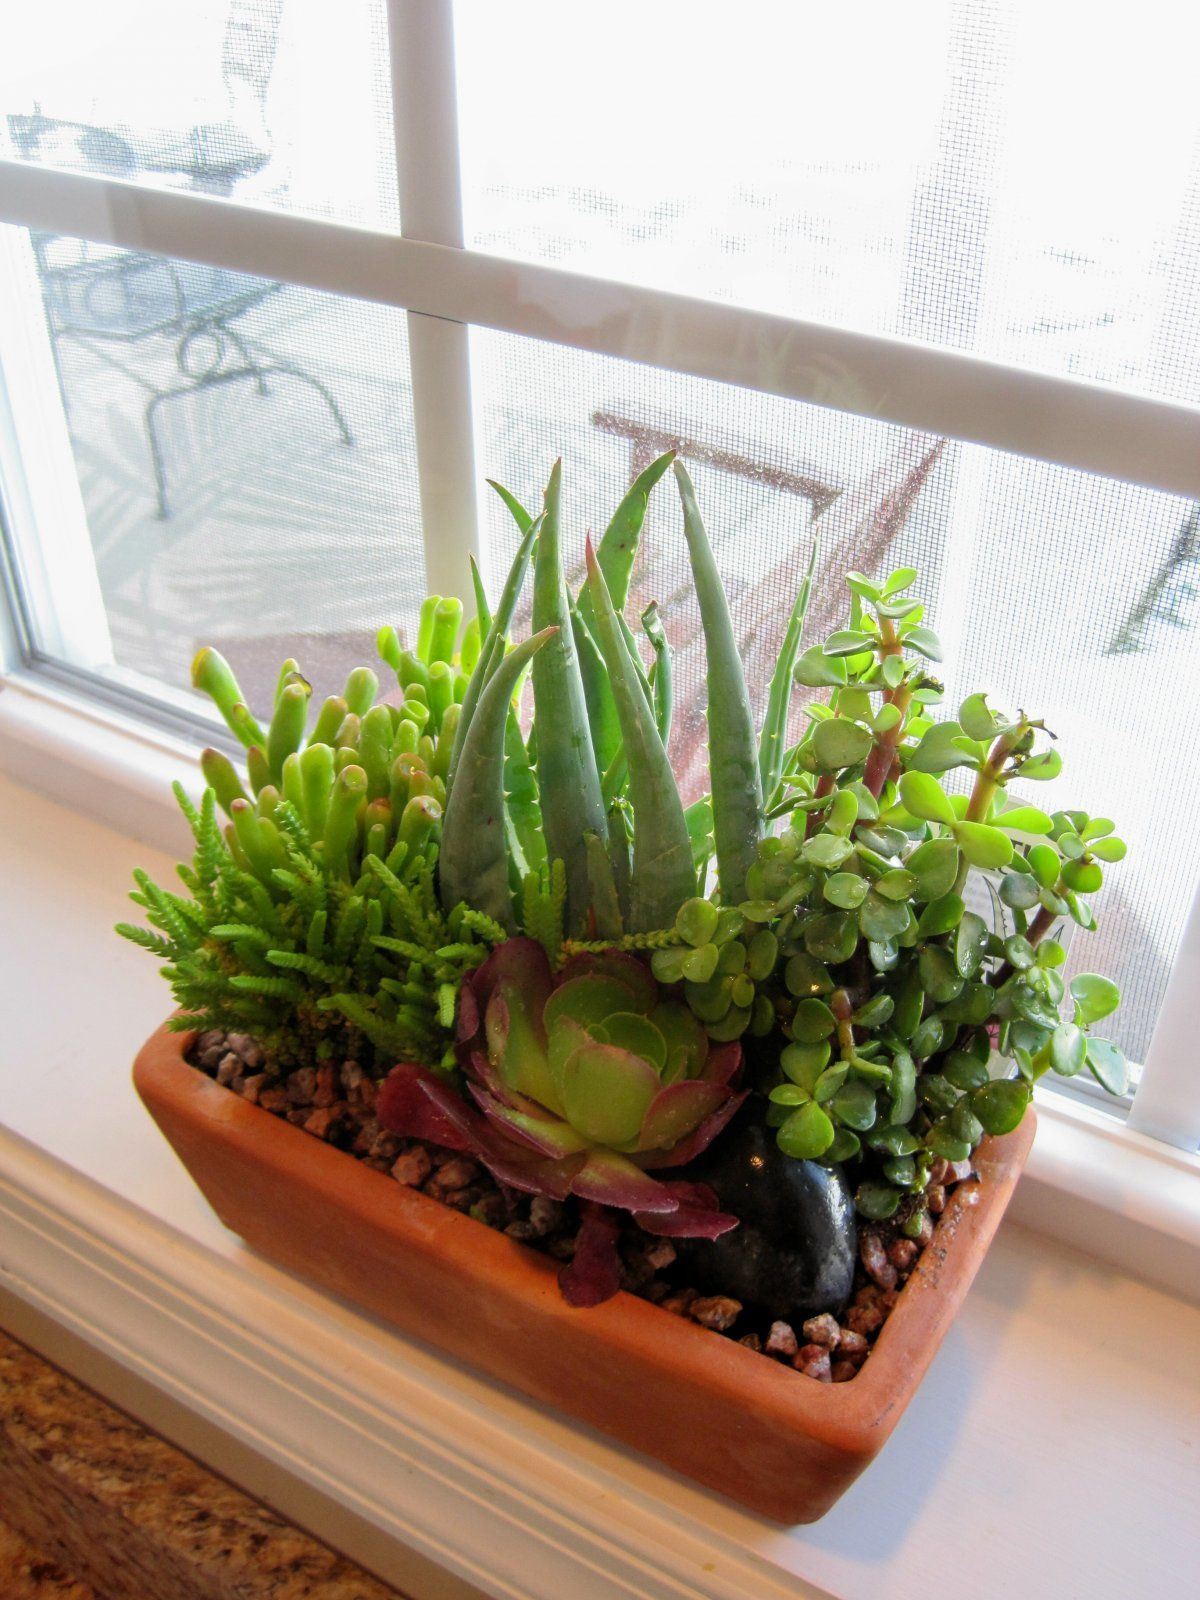 Beautiful Indoor Small Aloe Vera Plant Decoration Ideas Decoration Interior 1200x1600 Pixels